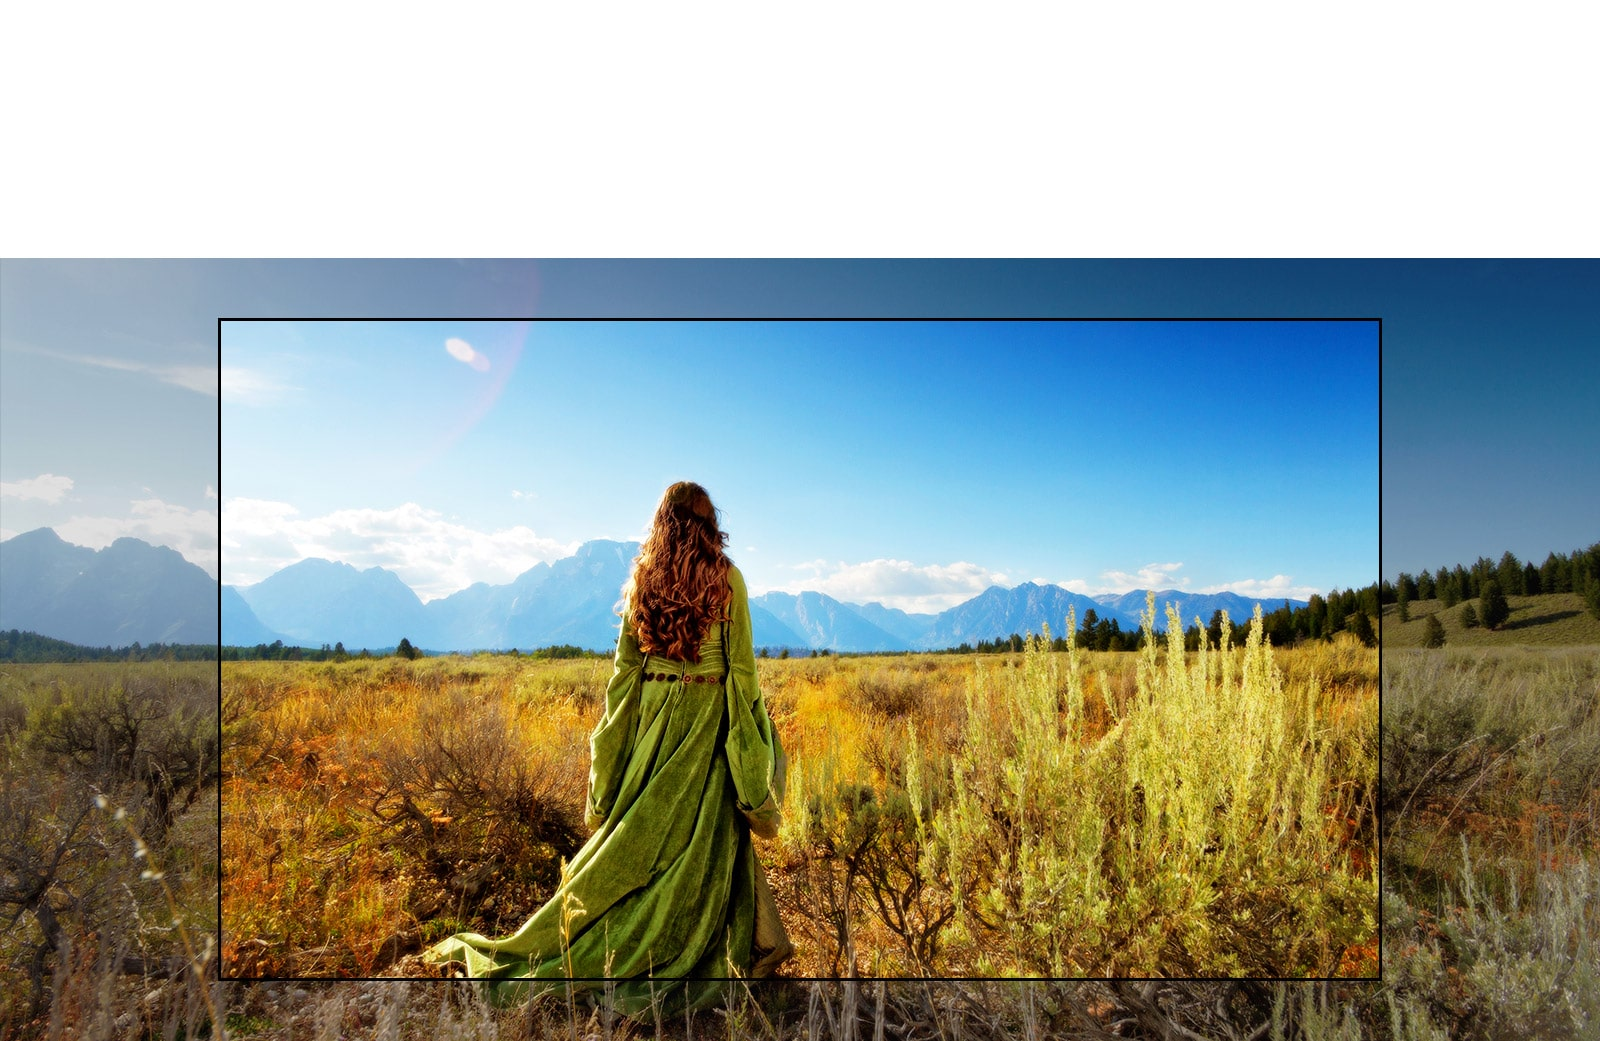 A TV screen showing a scene from a fantasy movie with a woman standing in the fields facing the mountains.